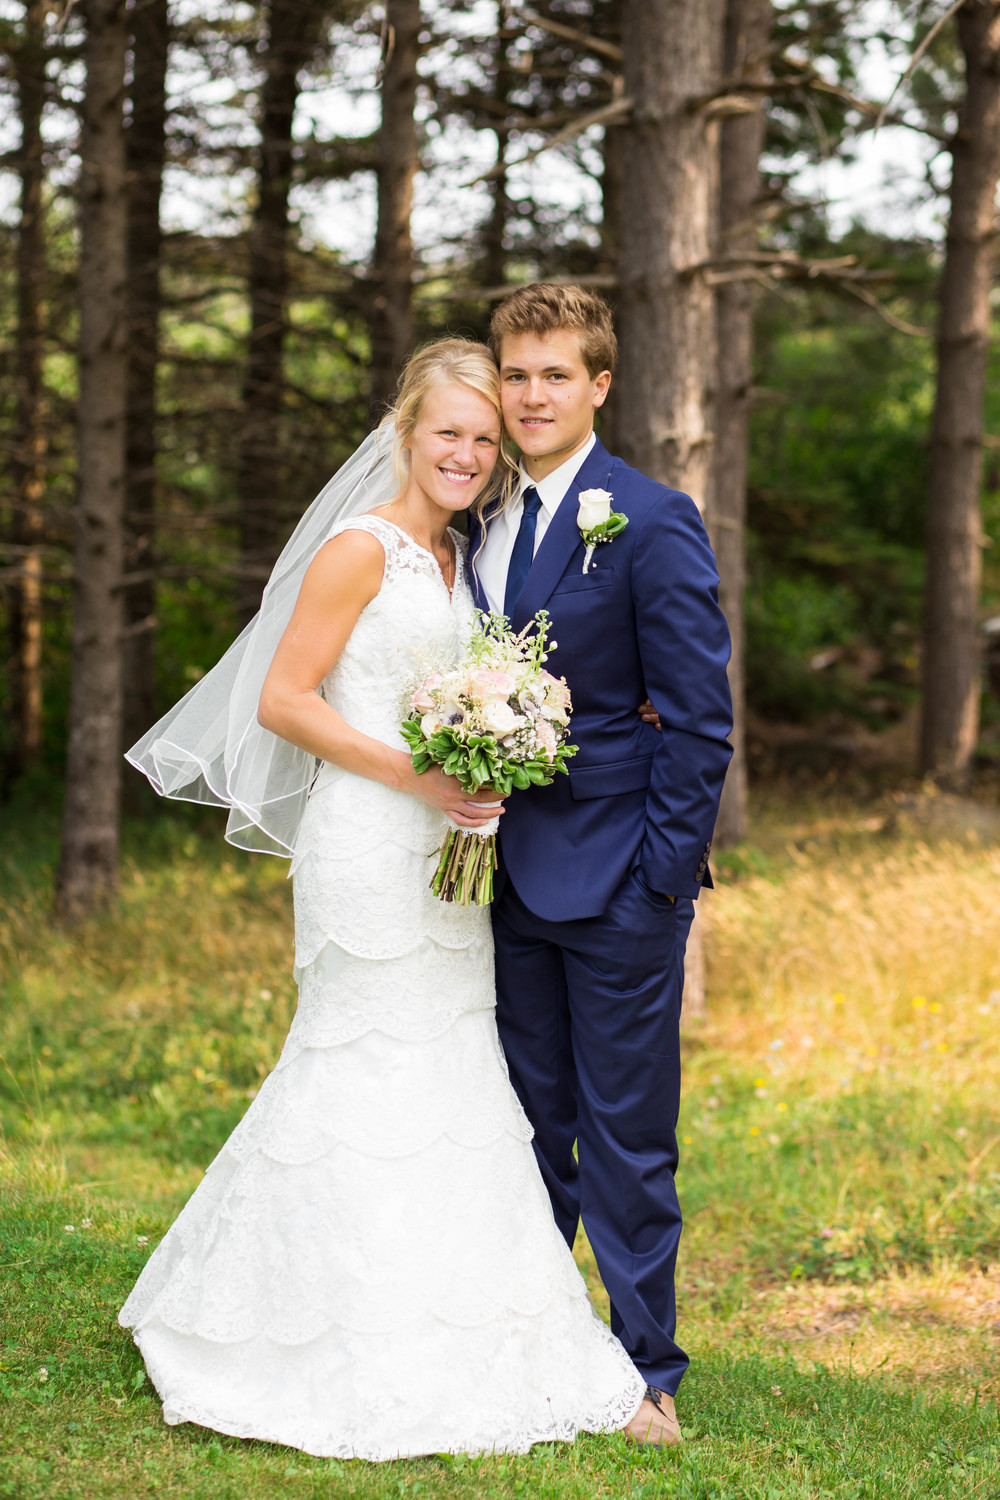 Congratulations Brady & Katie, wishing you the best as you begin your married life together!  -Larissa